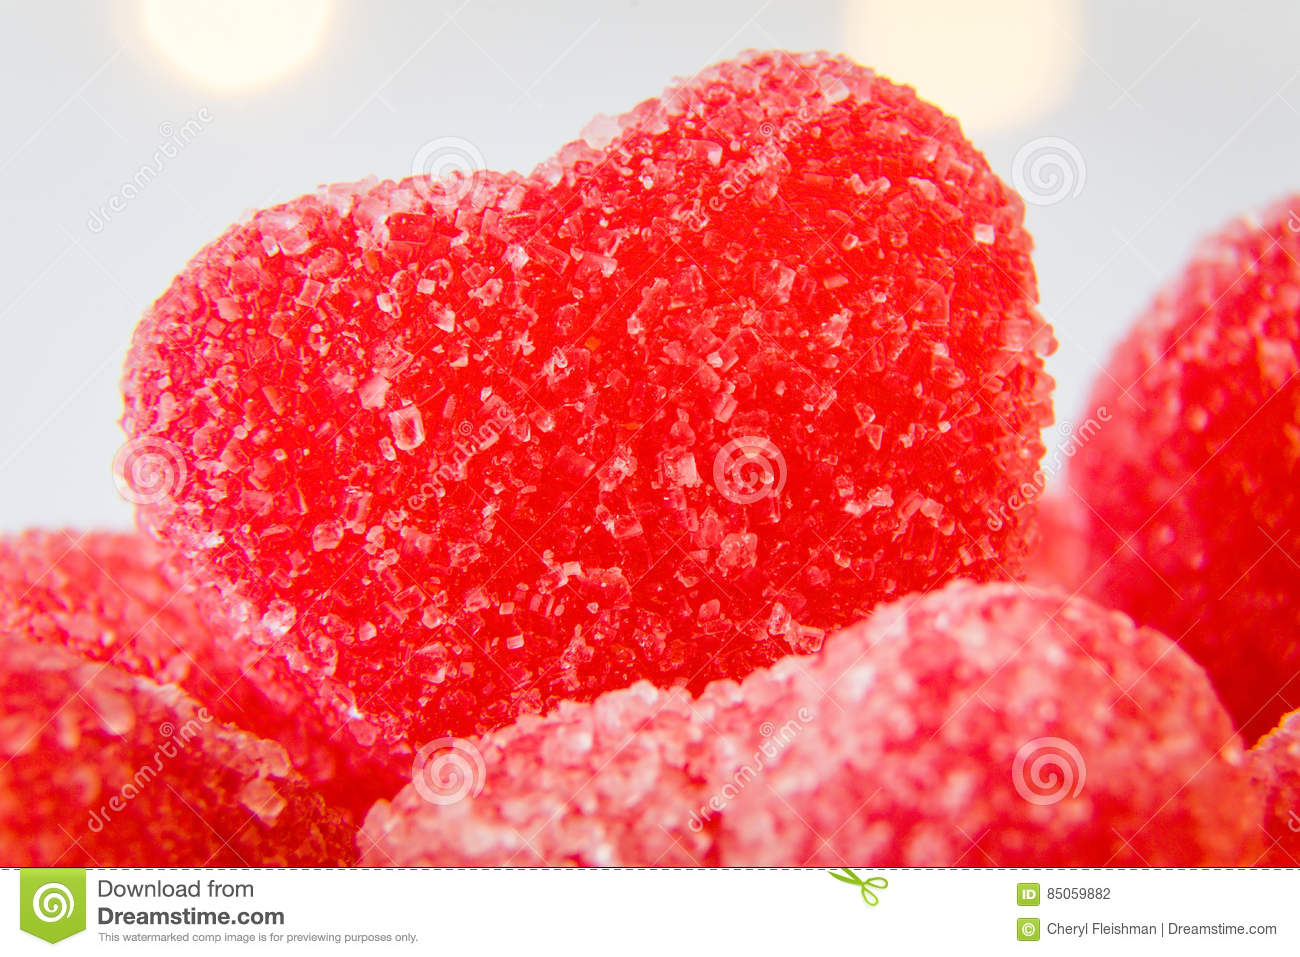 Red heart shaped sugar candy in a bowl